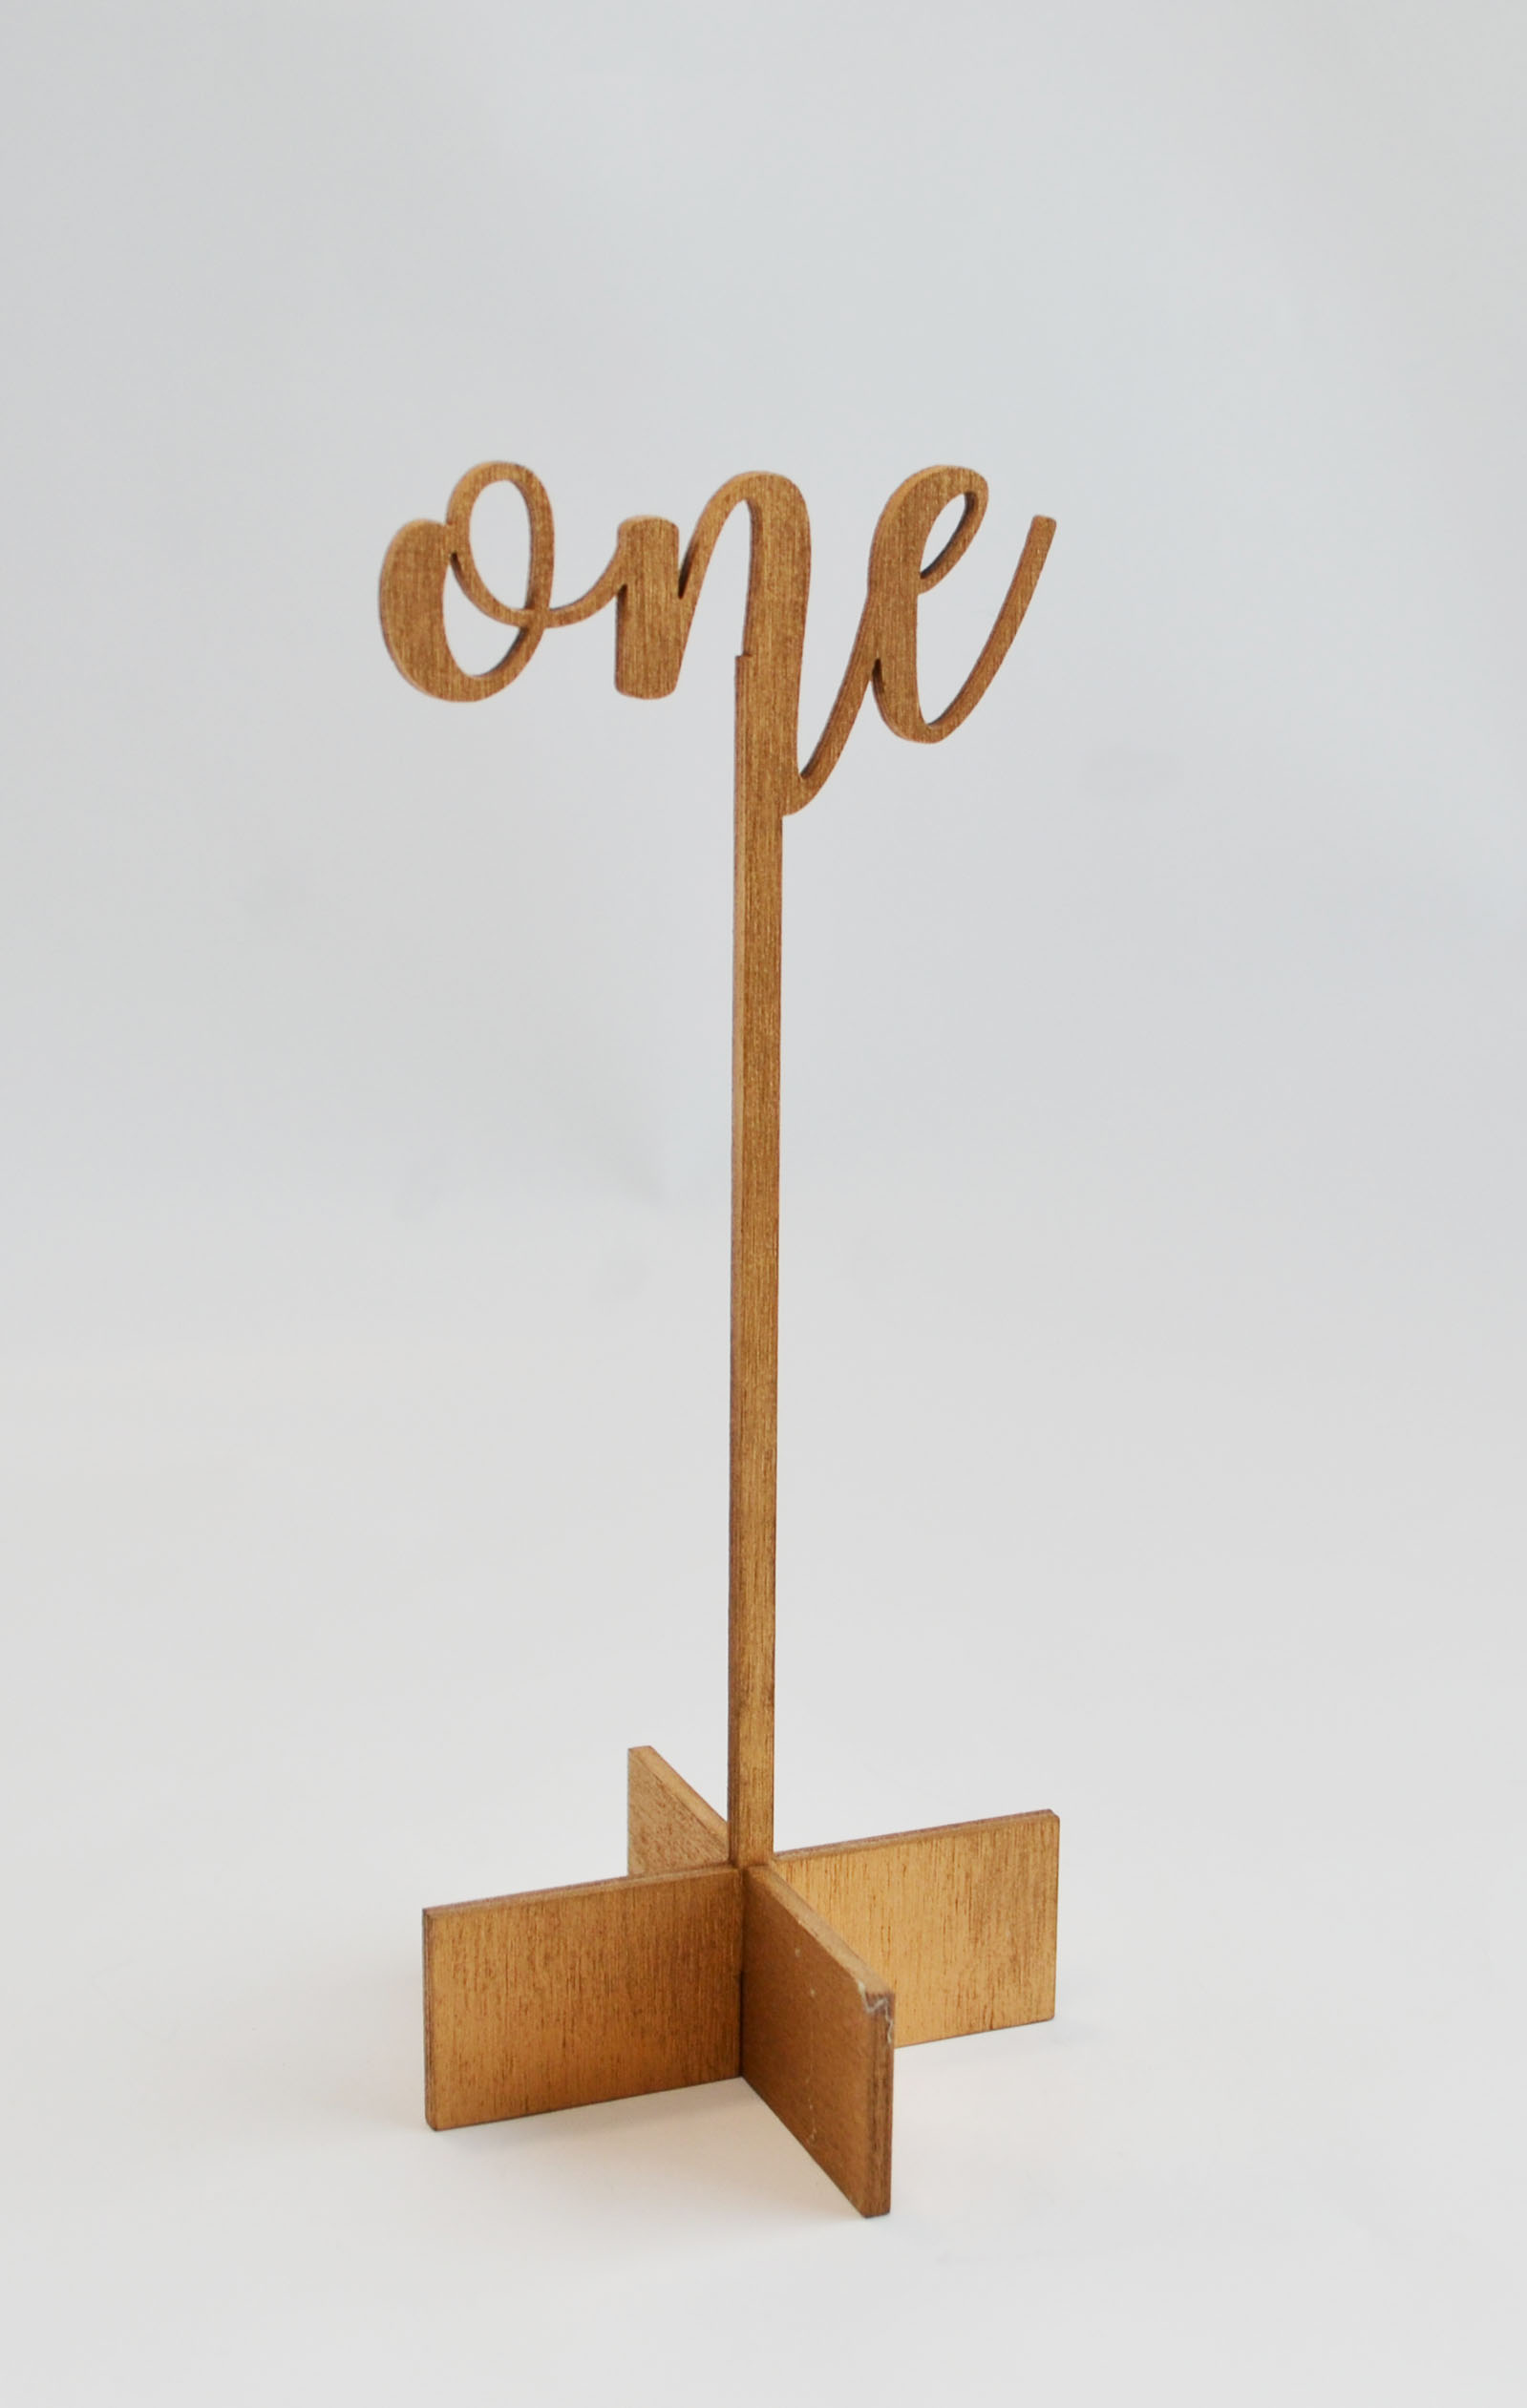 cut-out script - wood table number   Quantity: 15  Price: $10.00